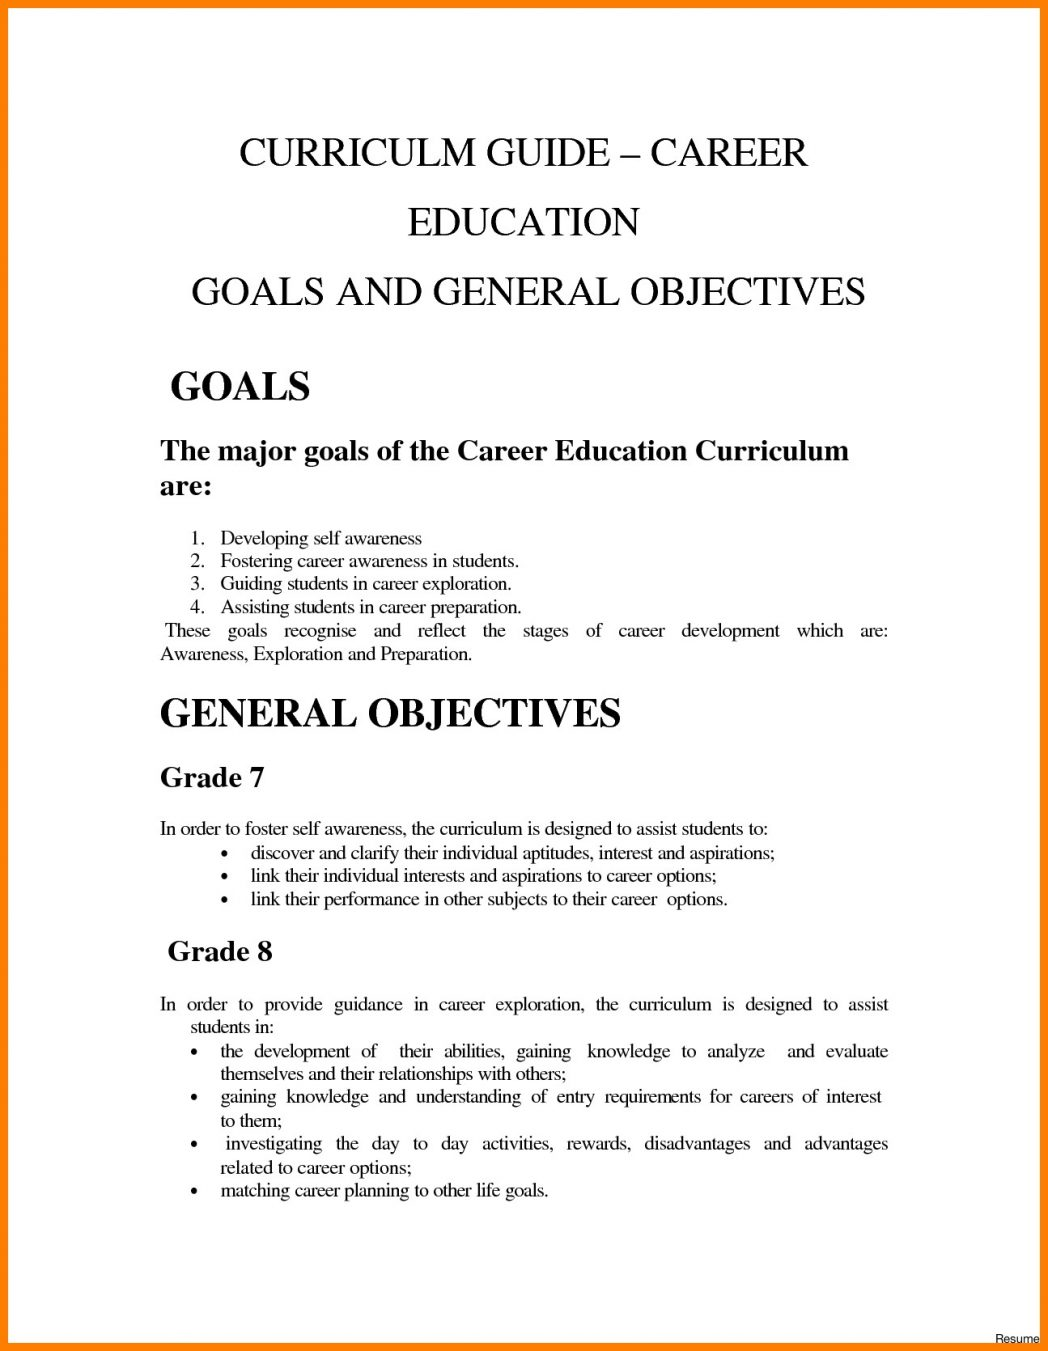 003 Career Aspiration Sample Essays Of Goals For Resume Objective Work And Objectives Goa 1048x1351